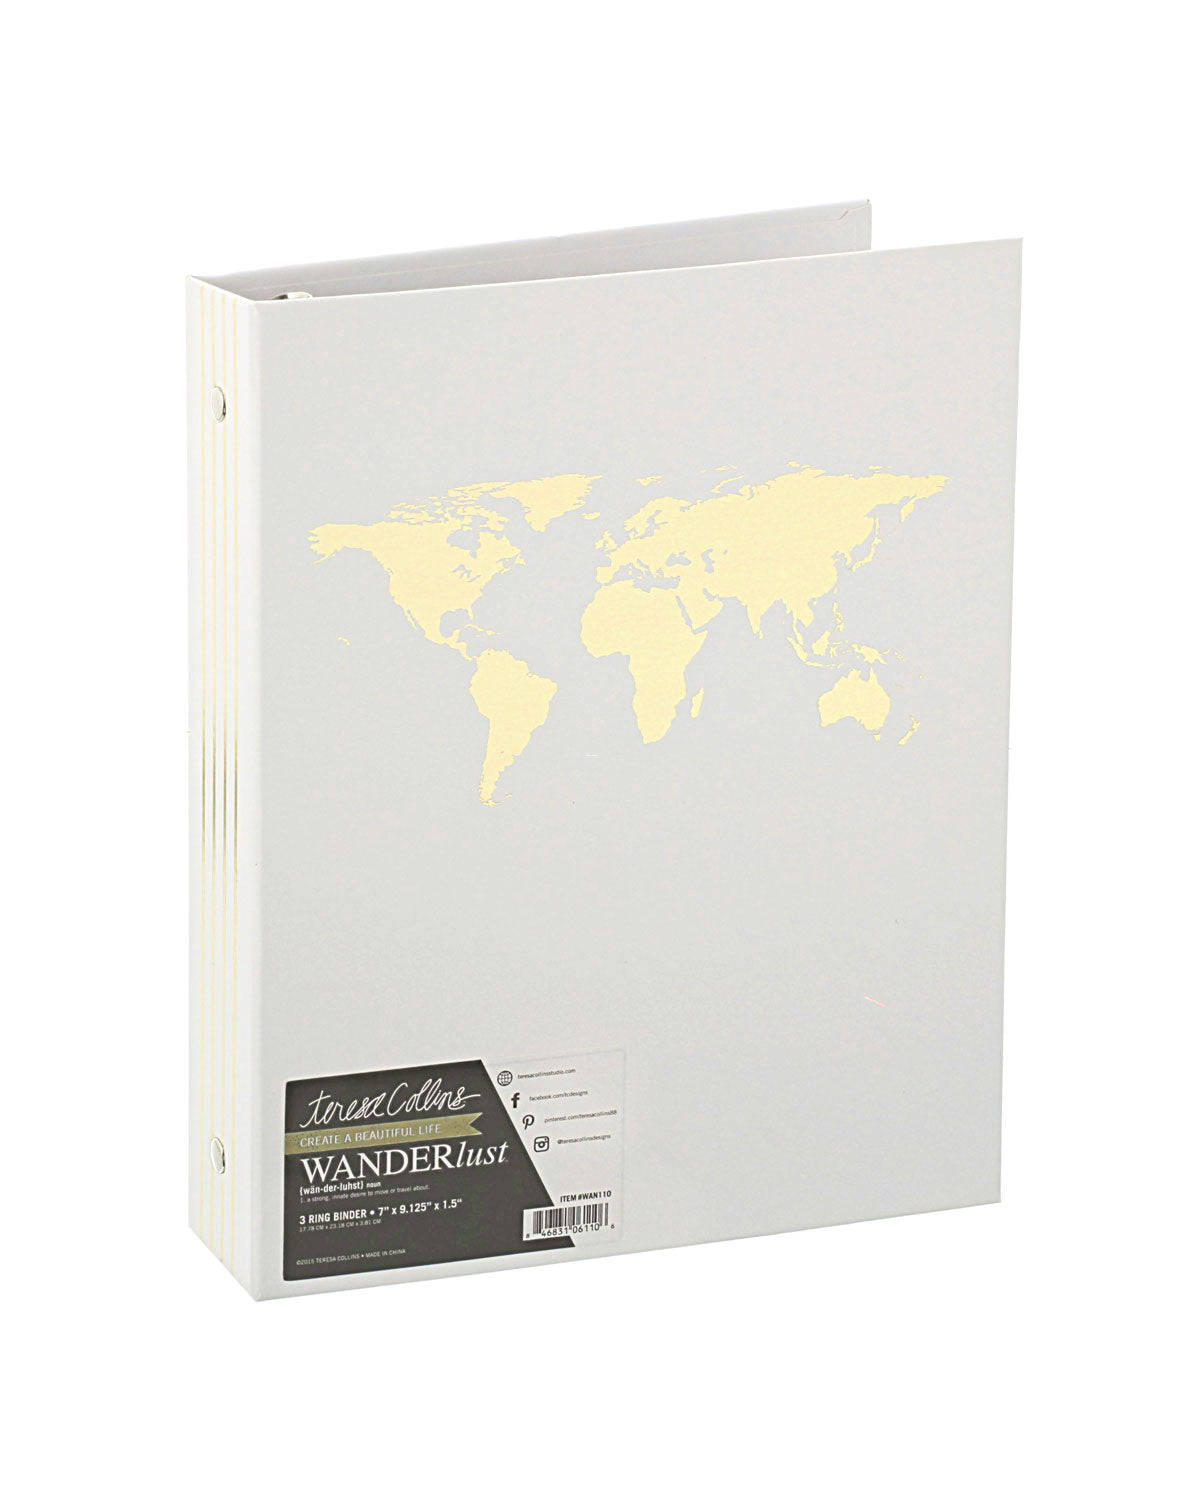 Wanderlust 3 Ring Binder